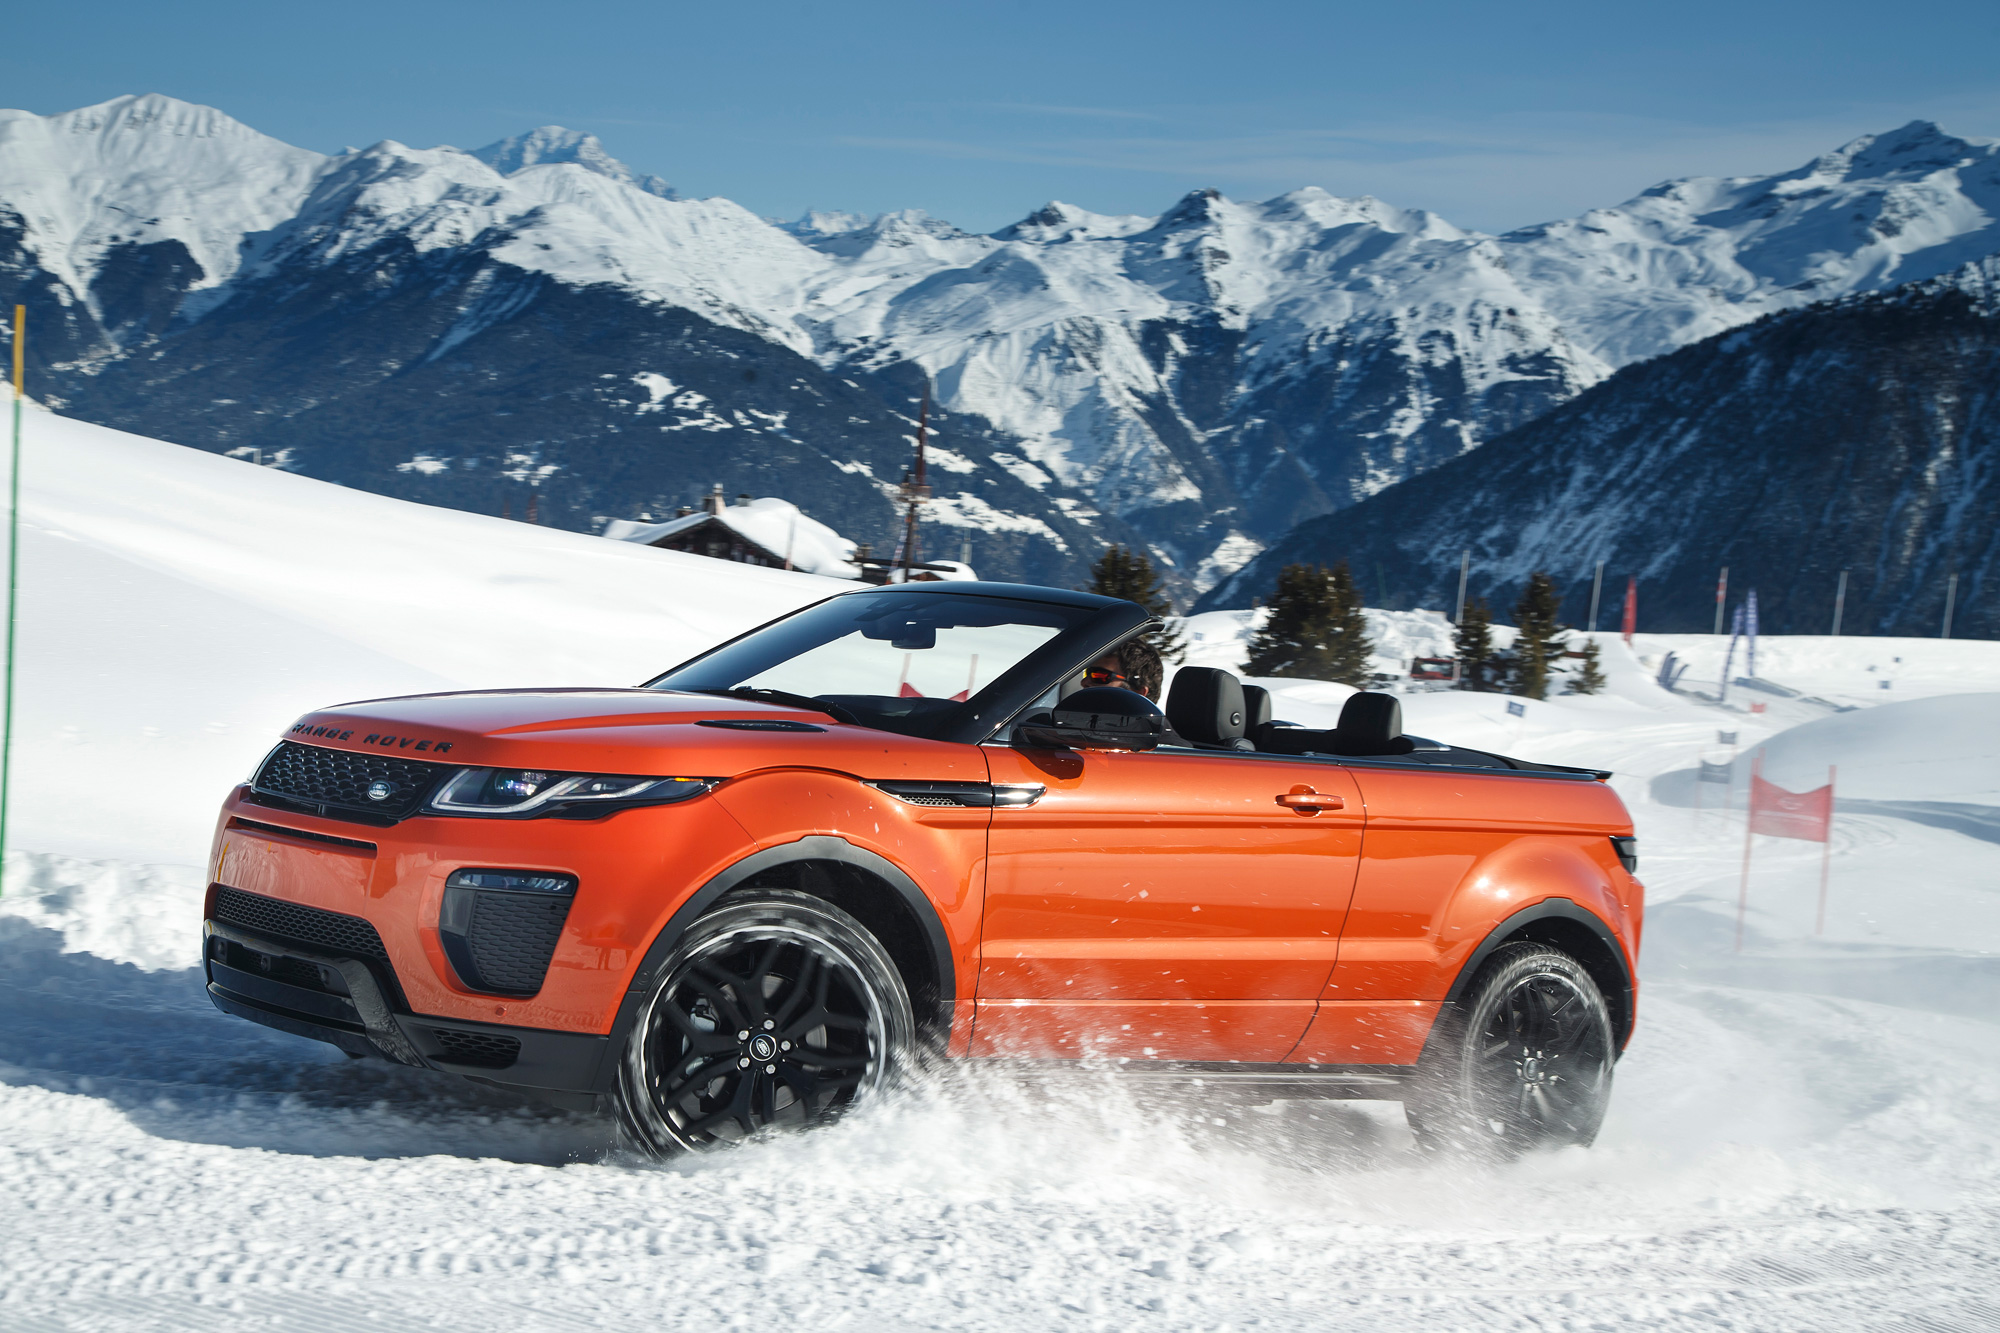 Road Testing The New Range Rover Evoque Convertible